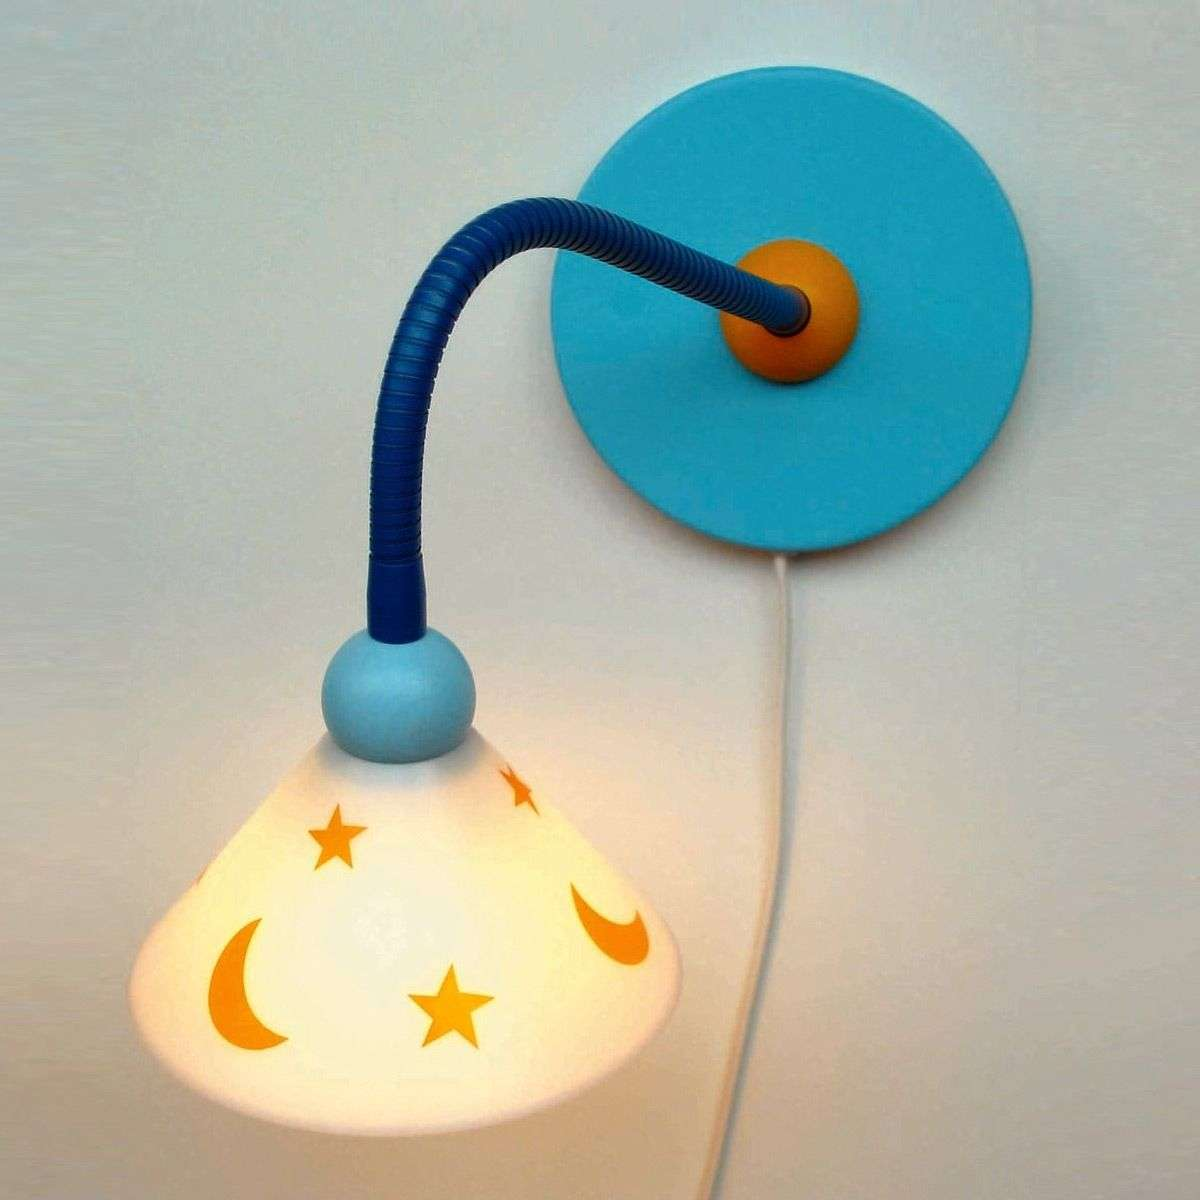 Prince childs room wall light flexible lights prince childs room wall light flexible aloadofball Image collections